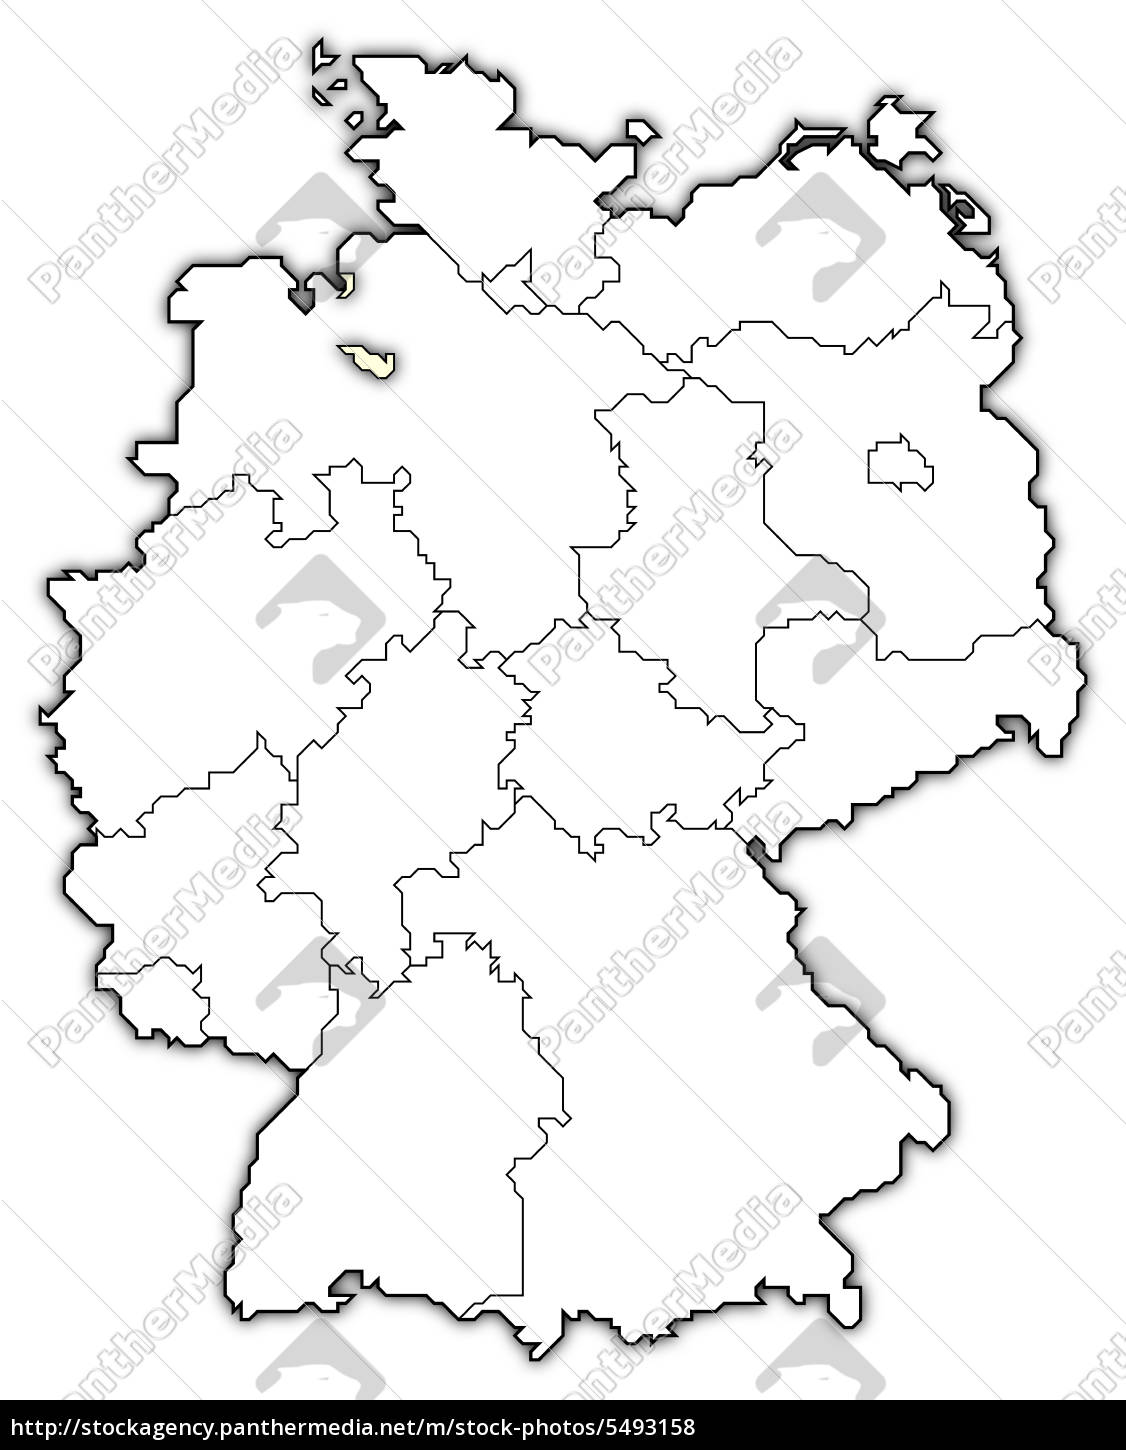 Map Of Bremen Germany.Stock Image 5493158 Map Of Germany Bremen Highlighted